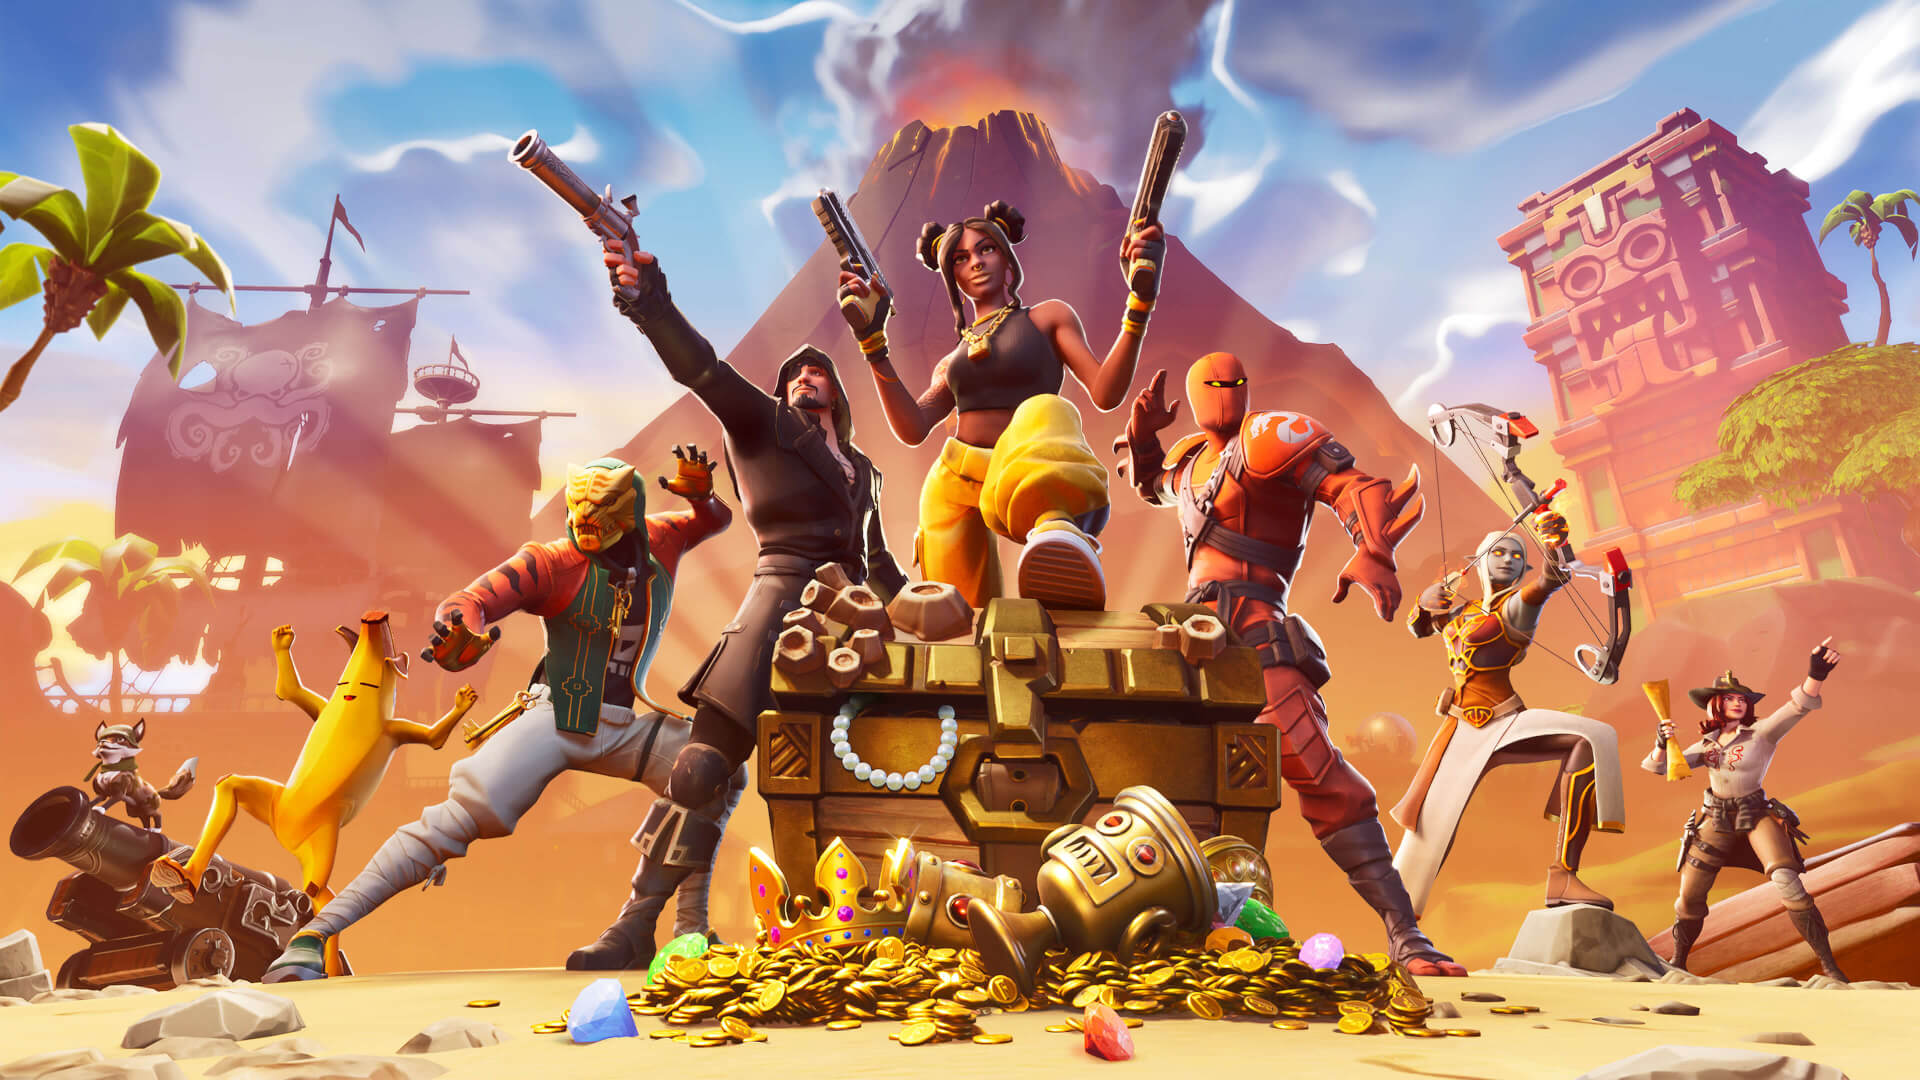 Fortnite To Be Banned? Biased Statement From Prince